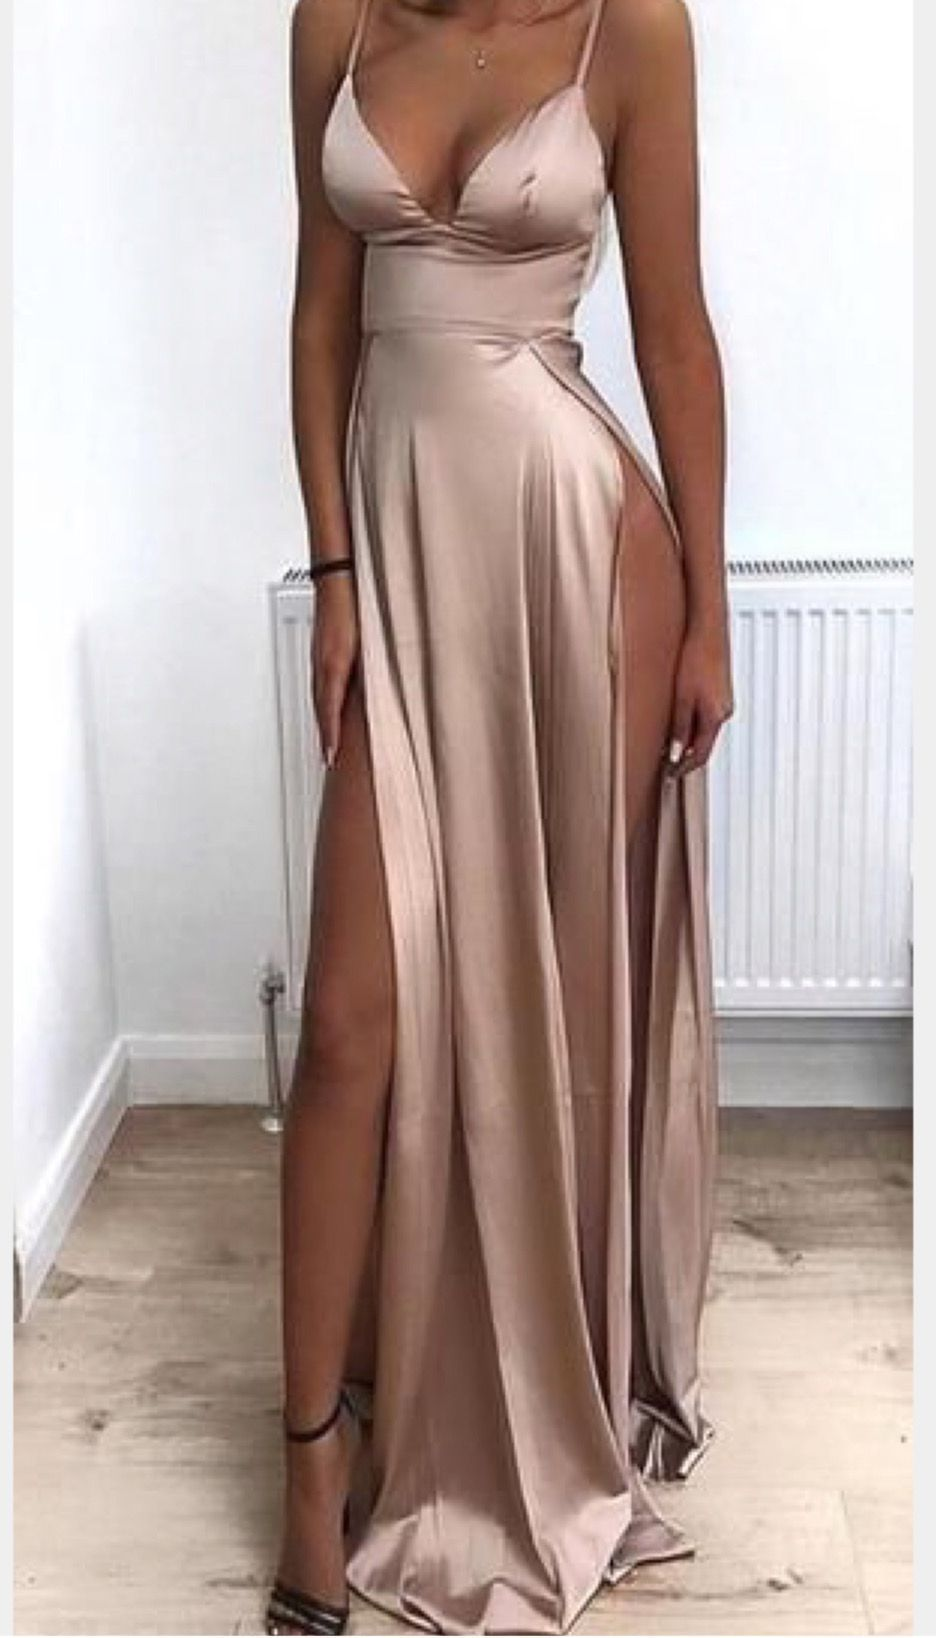 2019 Cheap Spaghetti Straps Side Split Simple Modest Sexy Prom Dresses, Evening dresses 1,Customized service and Rush order are available. Our email address:hotlady1001@outlook.com This dress could be custom made, there are no extra cost to do custom size and color. 2. Size: standard size or custom size, if dress is custom made, we need to size as following bust______ cm/inch waist______cm/inch hip:_______cm/inch Height with Shoes :_______cm/inch ( height is from your top head to your toe,withou #modestprom